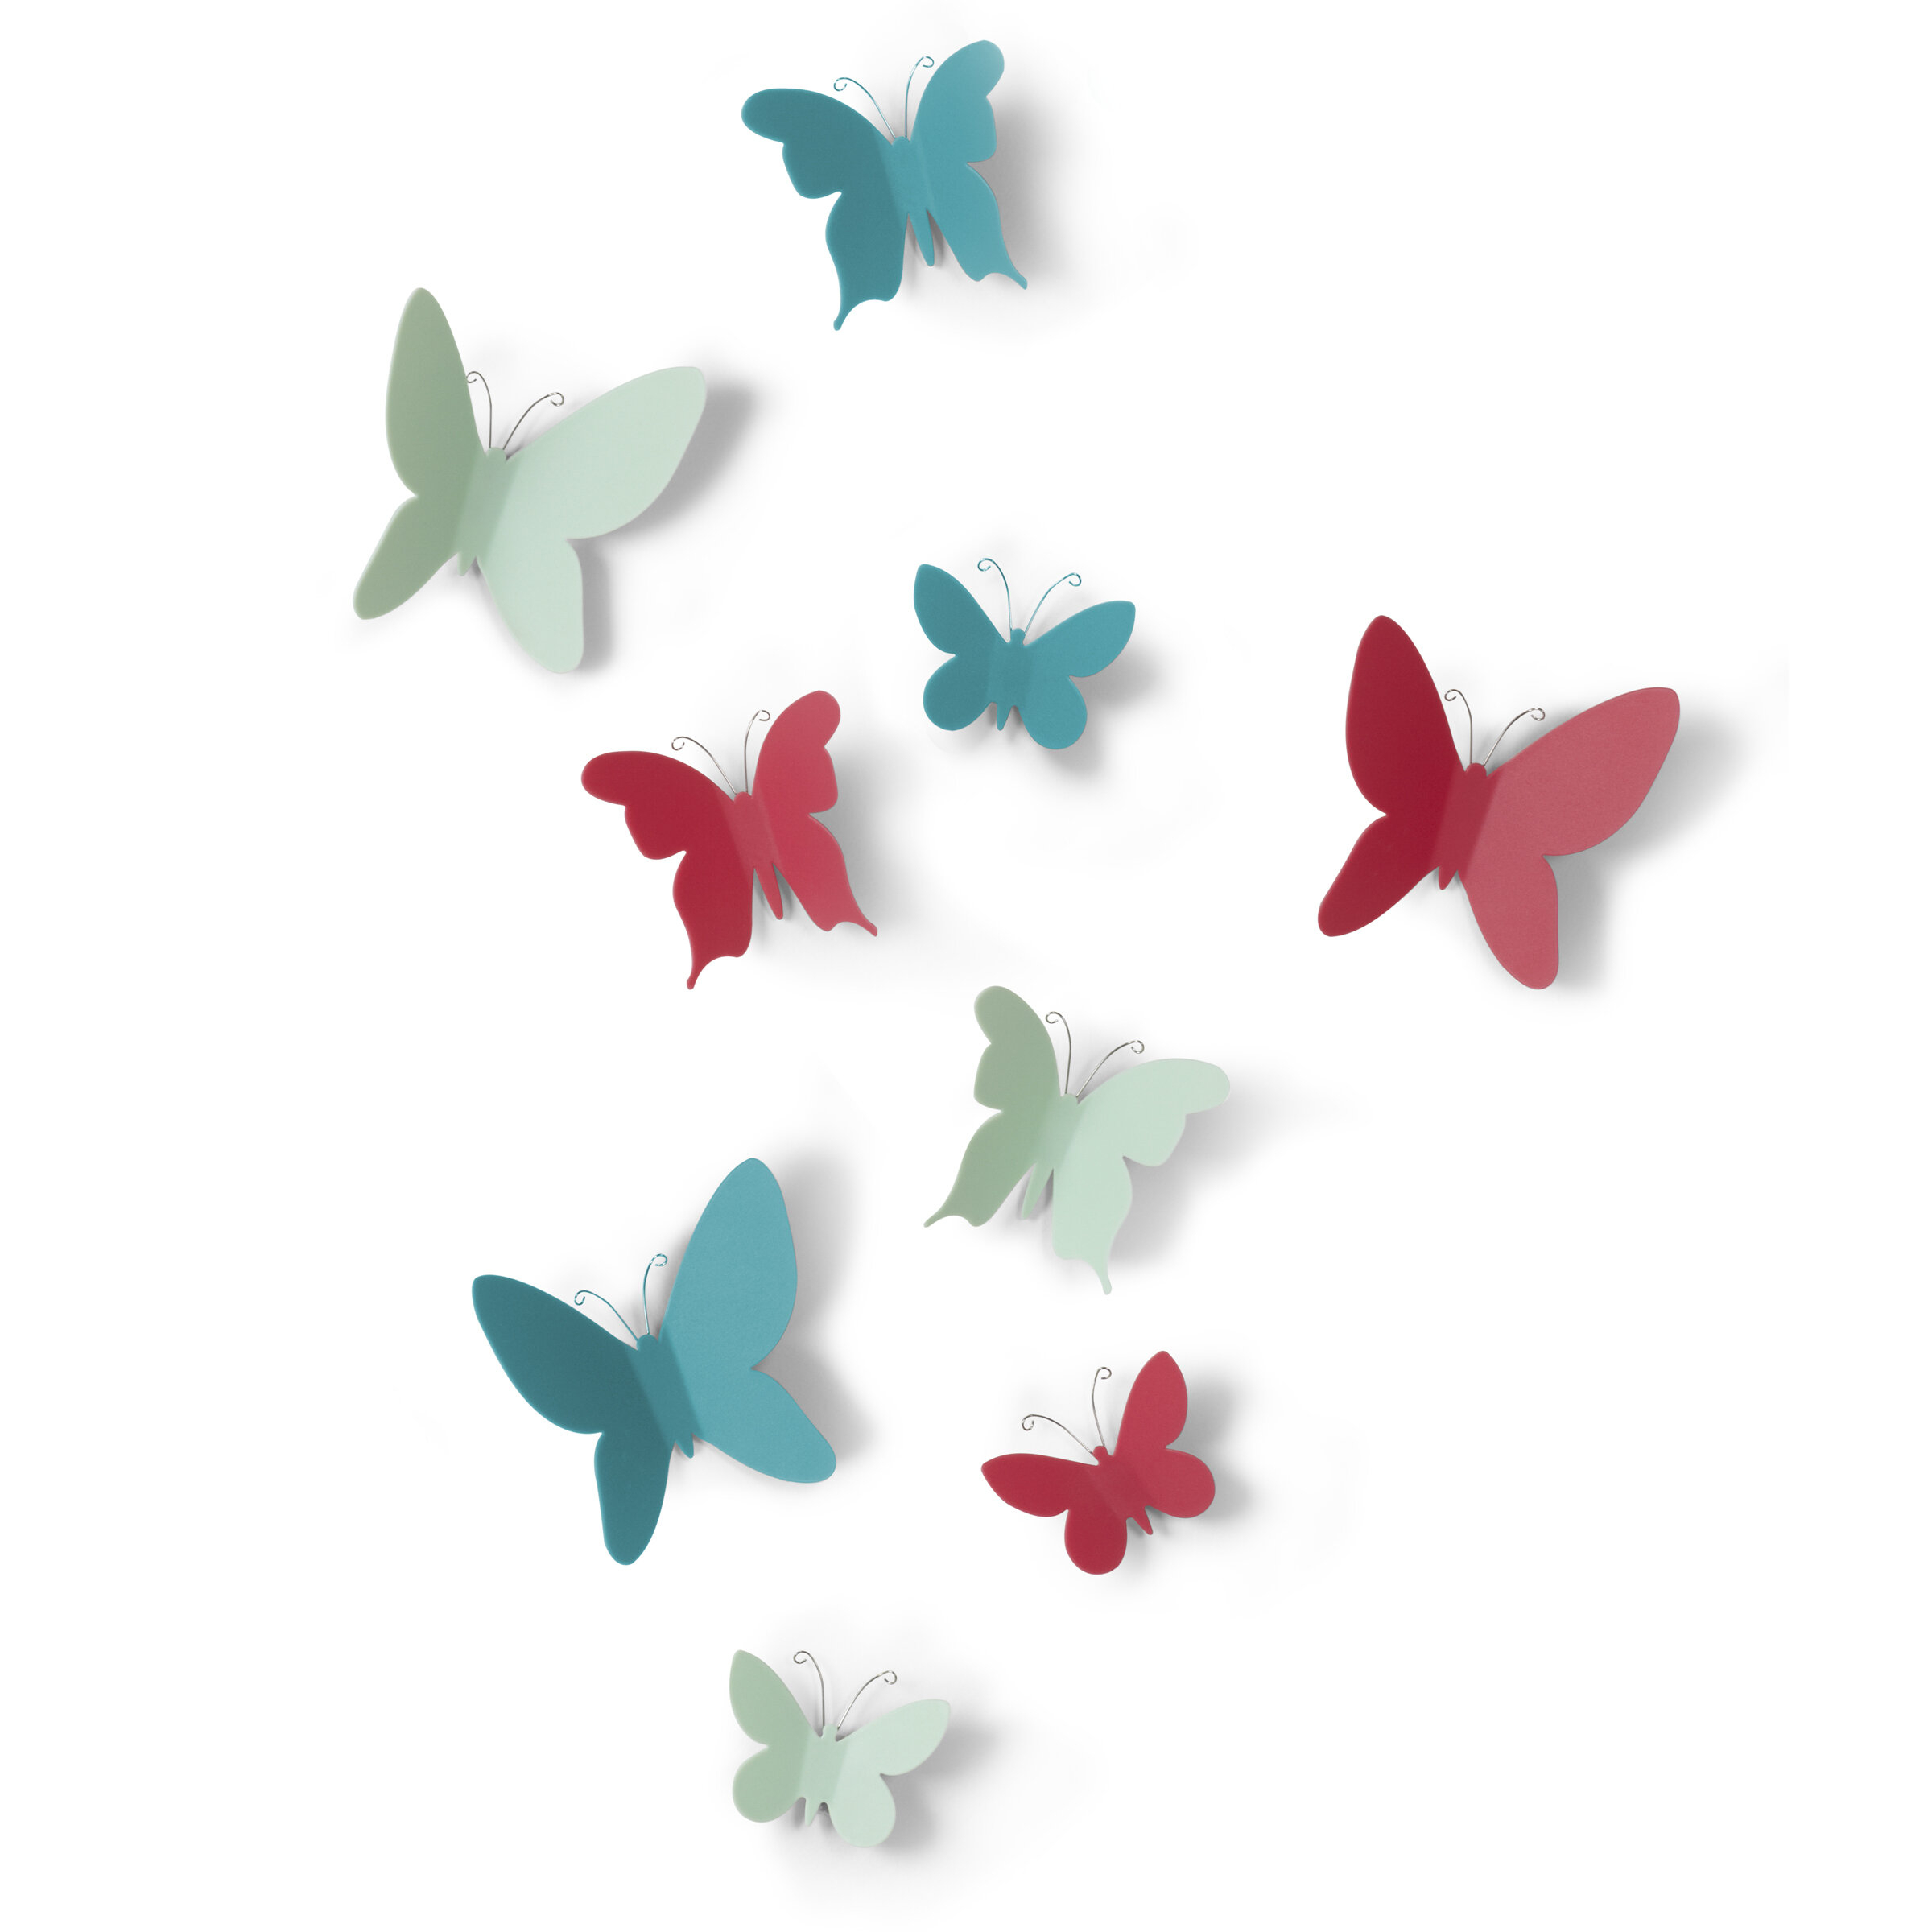 Mariposa 9 Piece Wall Decor Set Intended For Mariposa 9 Piece Wall Decor (View 14 of 30)